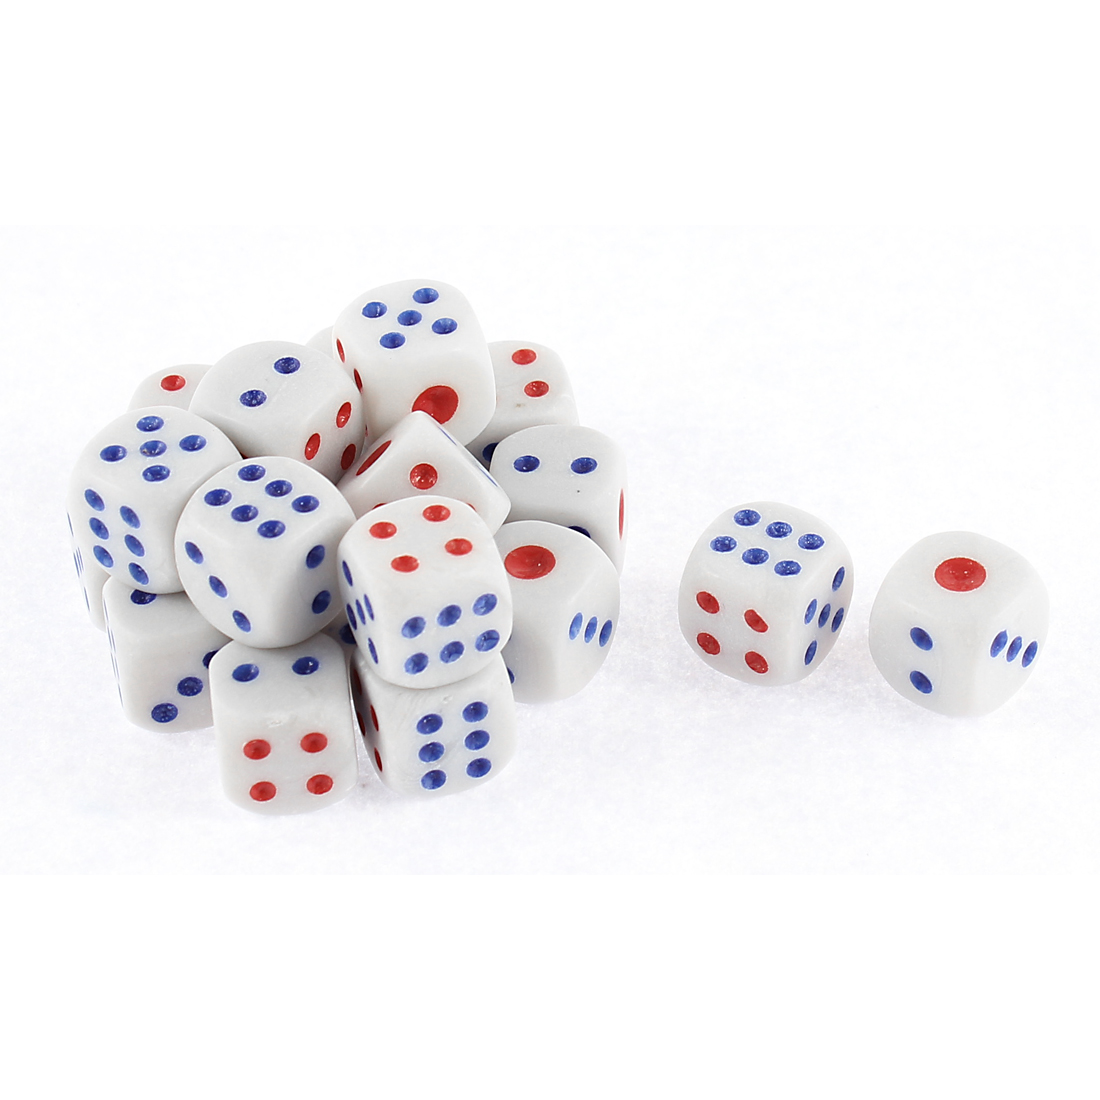 20 Pcs Round Corner Plastic Gaming Party Bar Casino Playing Cubical Dices